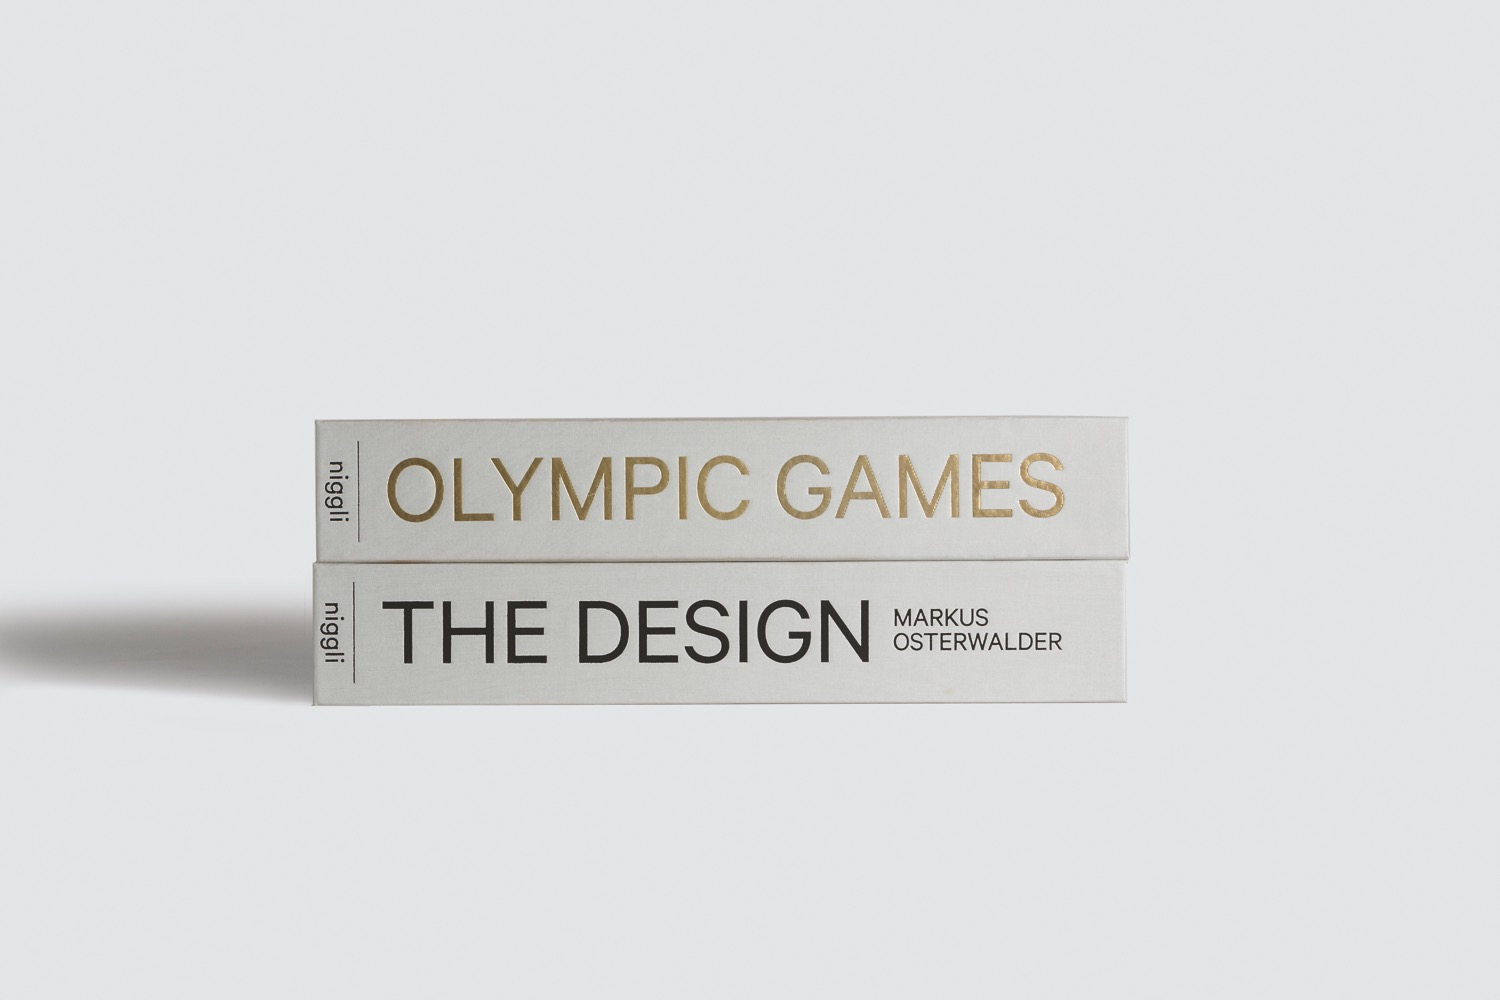 Olympic Games The Design  IER1482